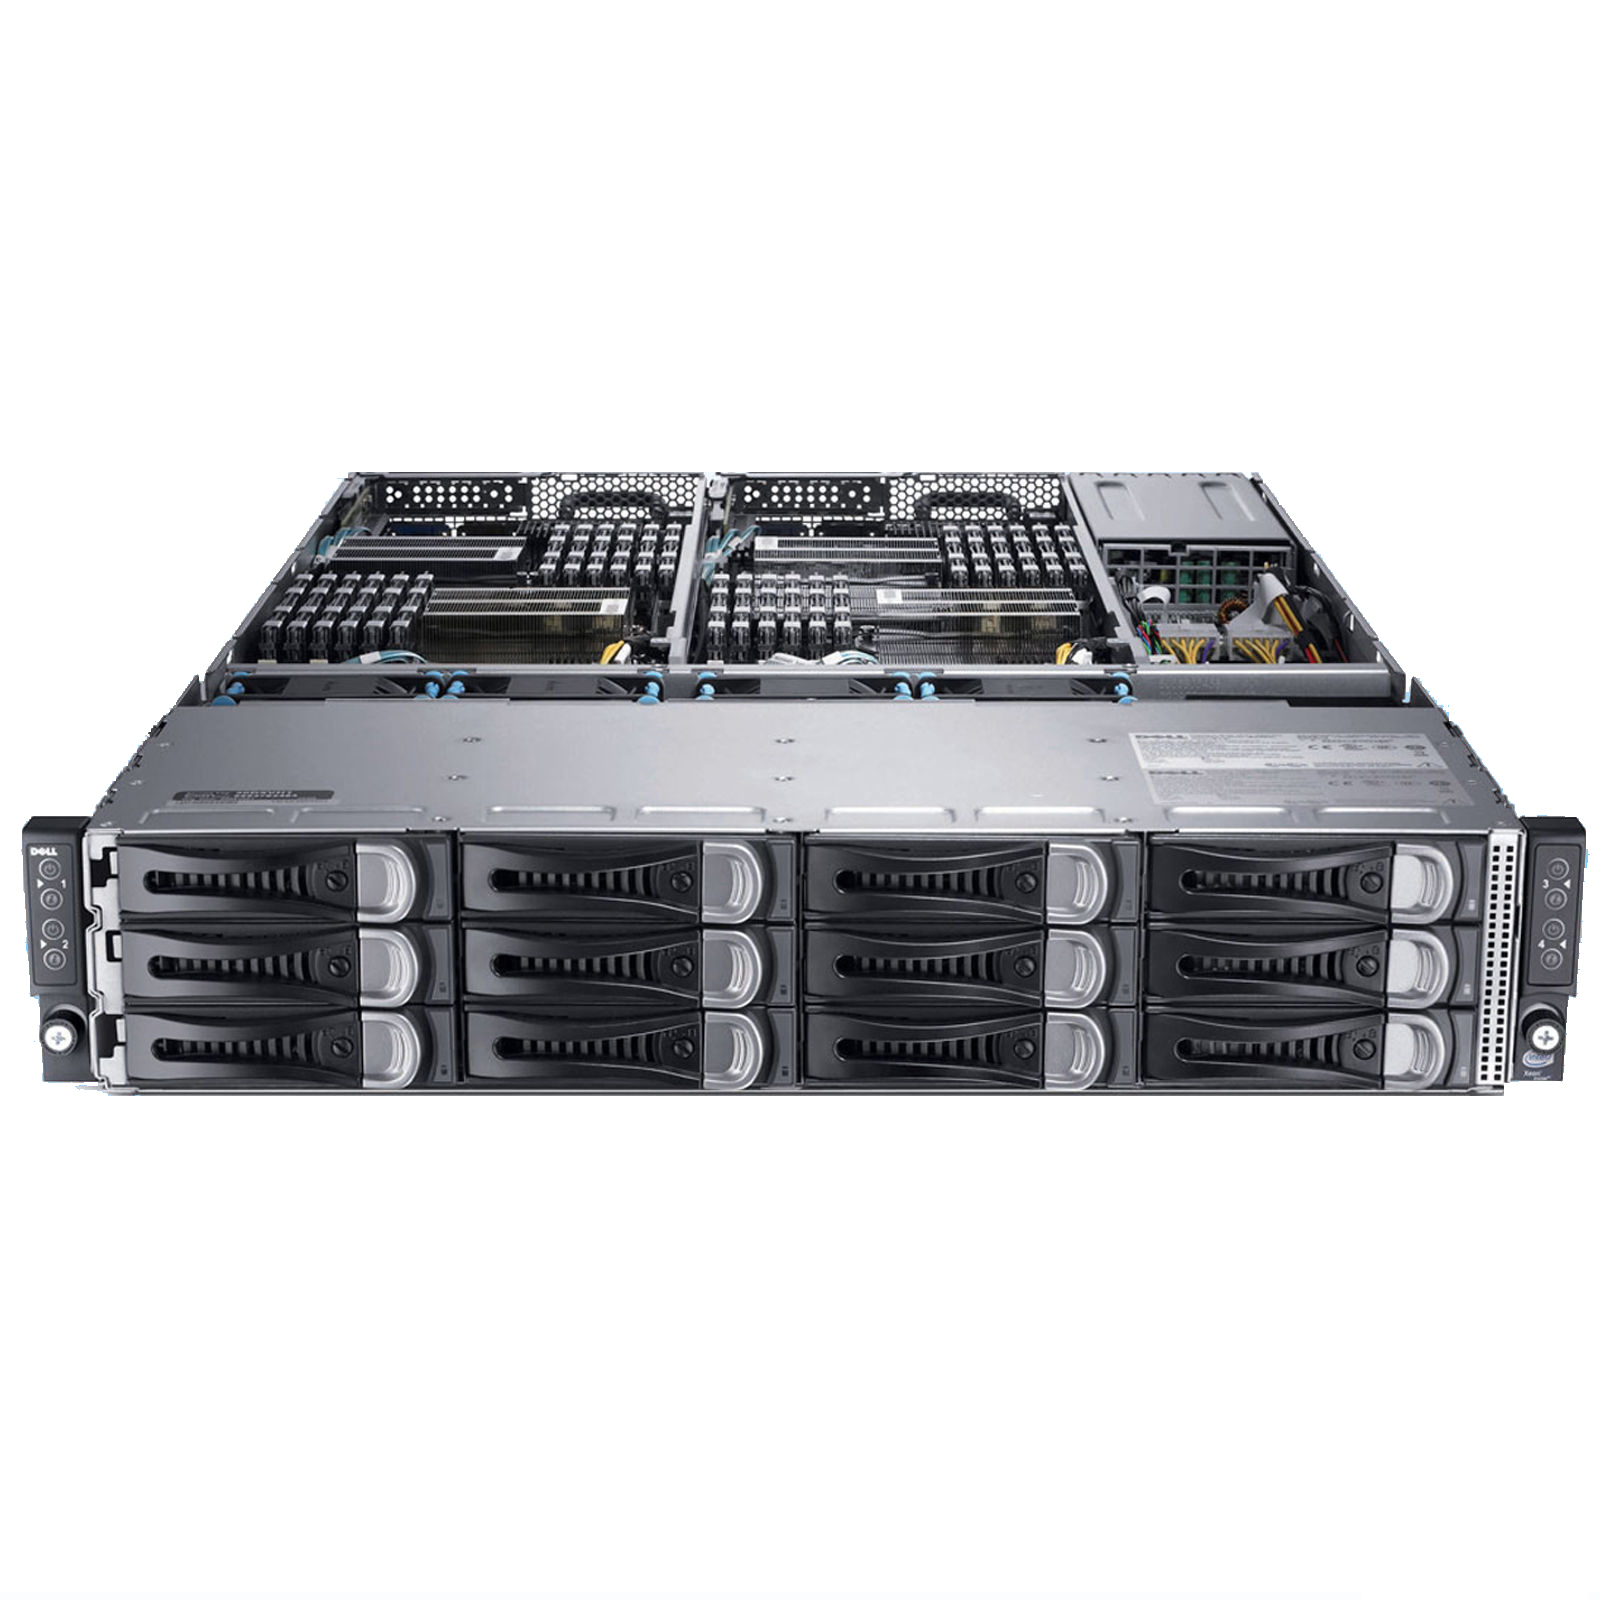 SERVER DELL POWEREDGE C6220 E5-2670 C2 (2.0Ghz - 20M Cache - 8 Core/ 16 Threads)